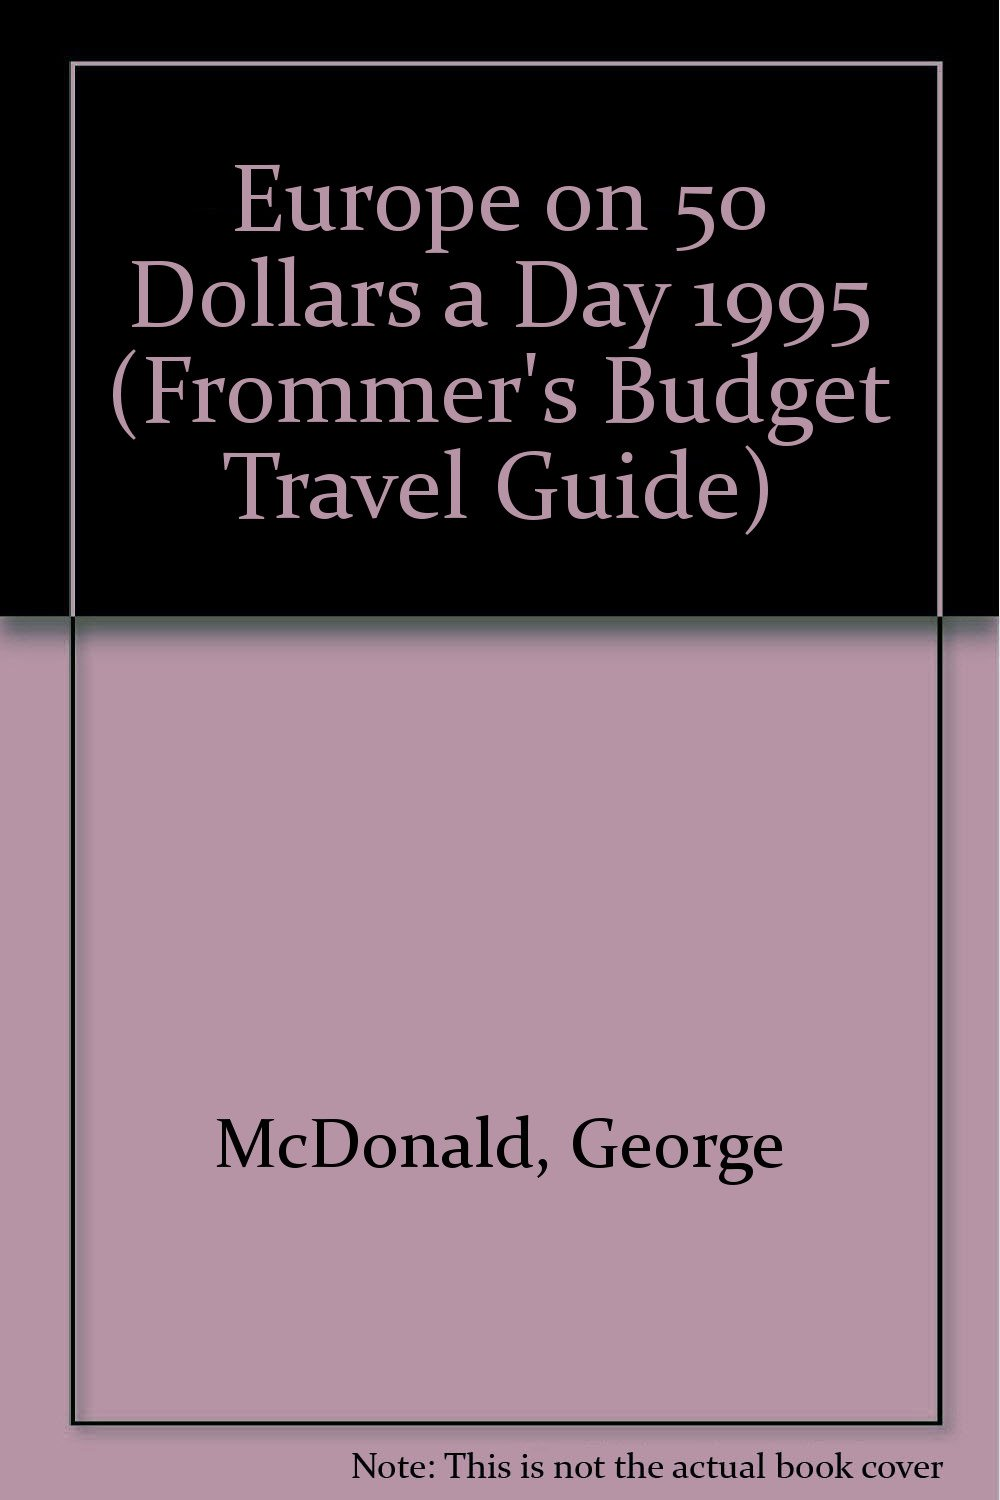 Frommer's Budget Travel Guide: Europe on $50 a Day, 1995 (Frommer's